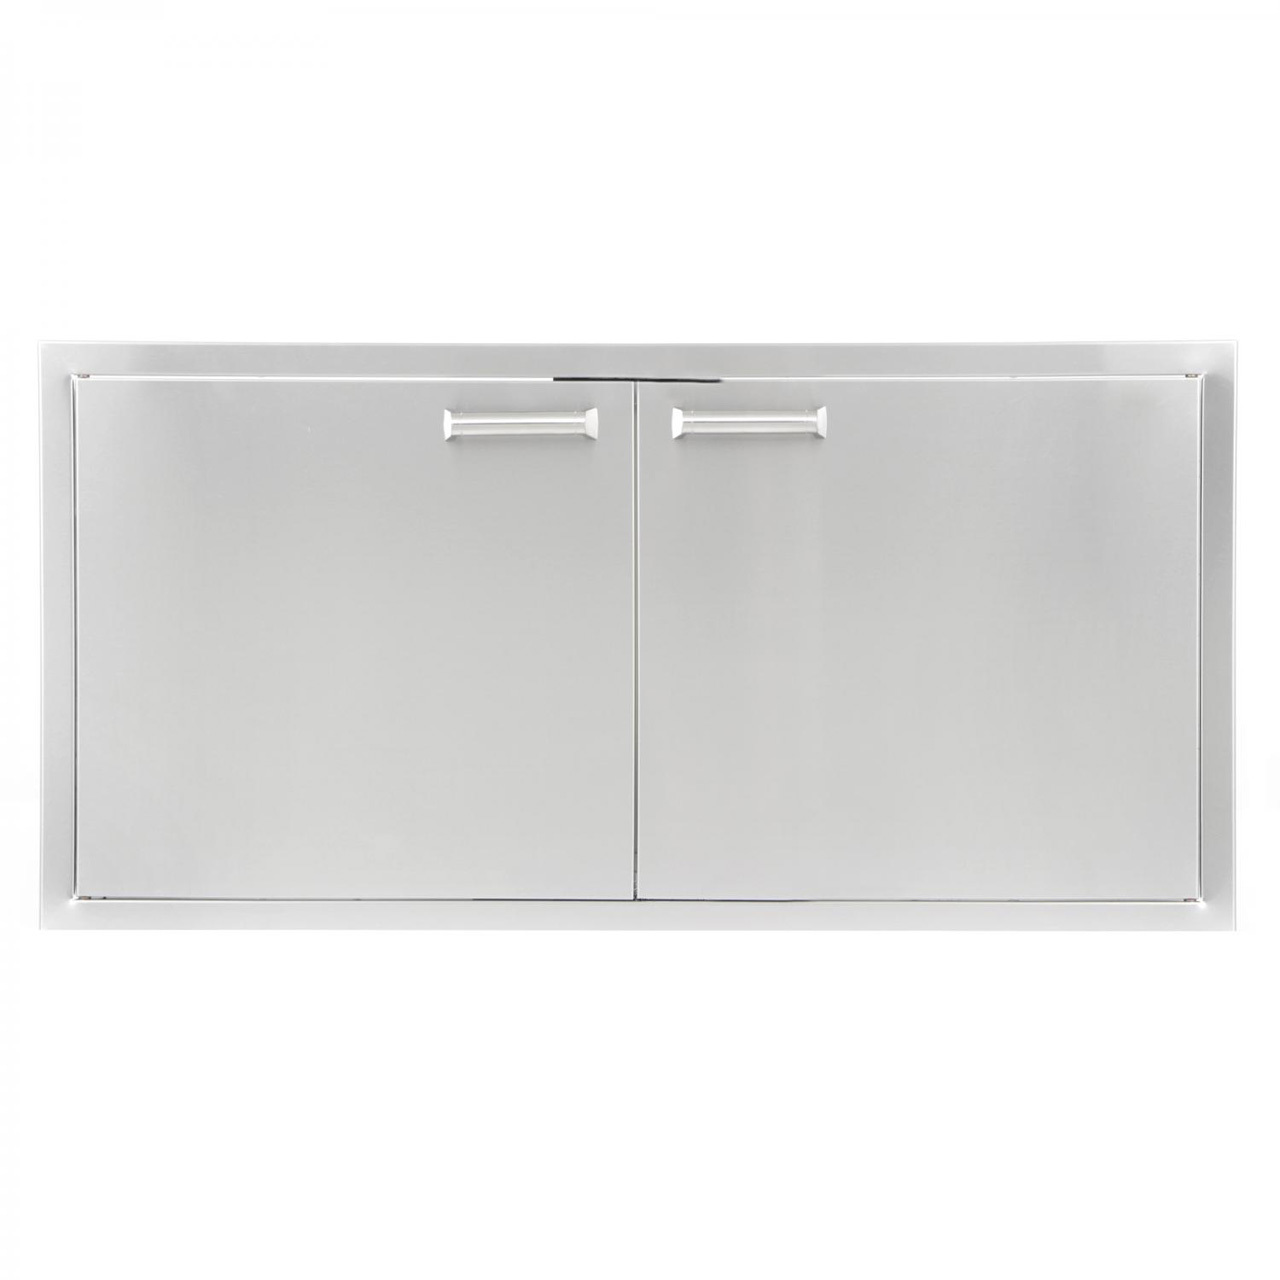 BBQ Island 42 x 19 Inch Double Access Door - 350H Series